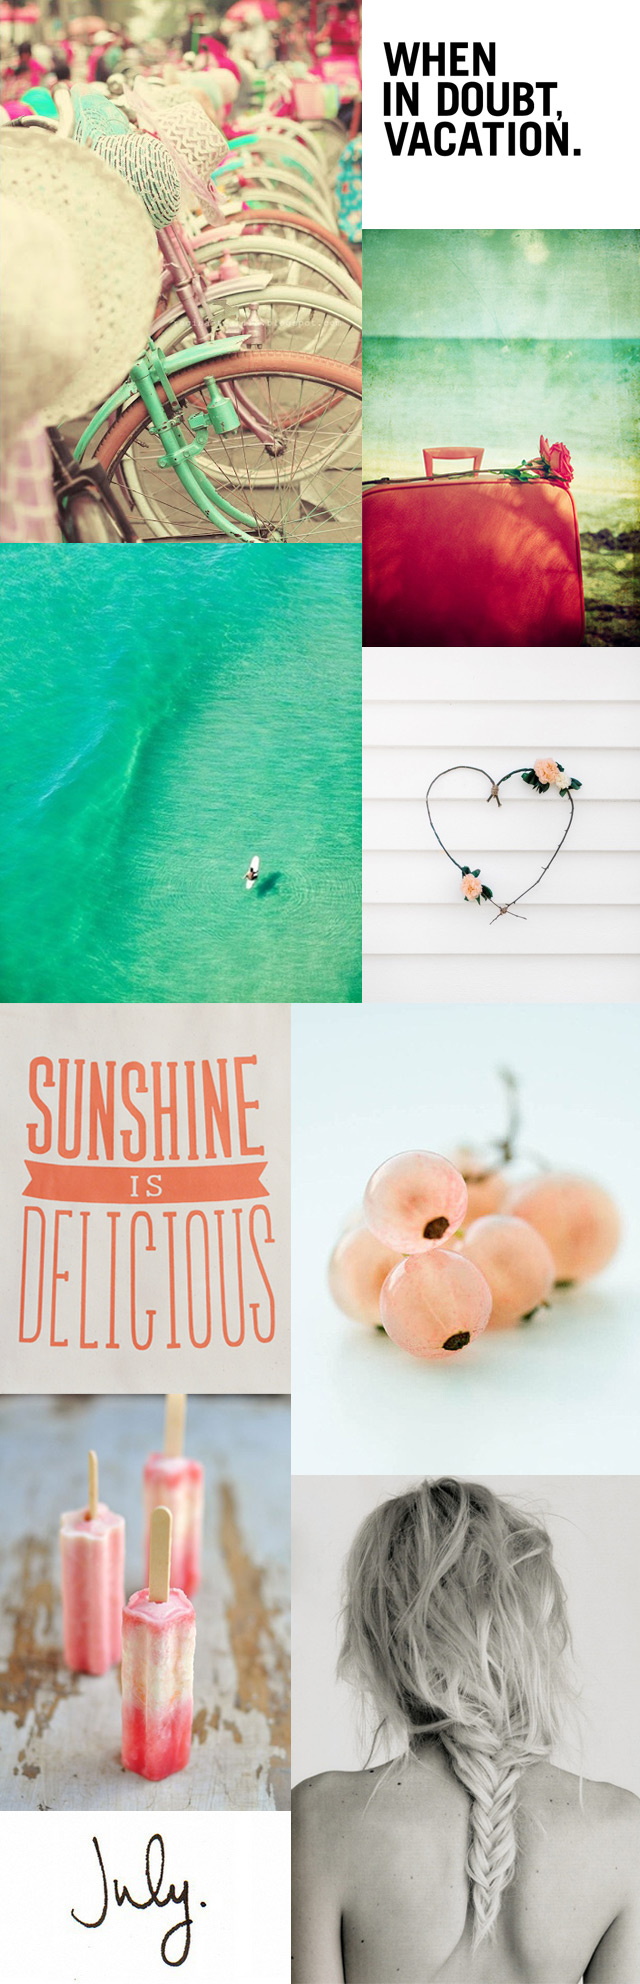 More sunny & lazy images